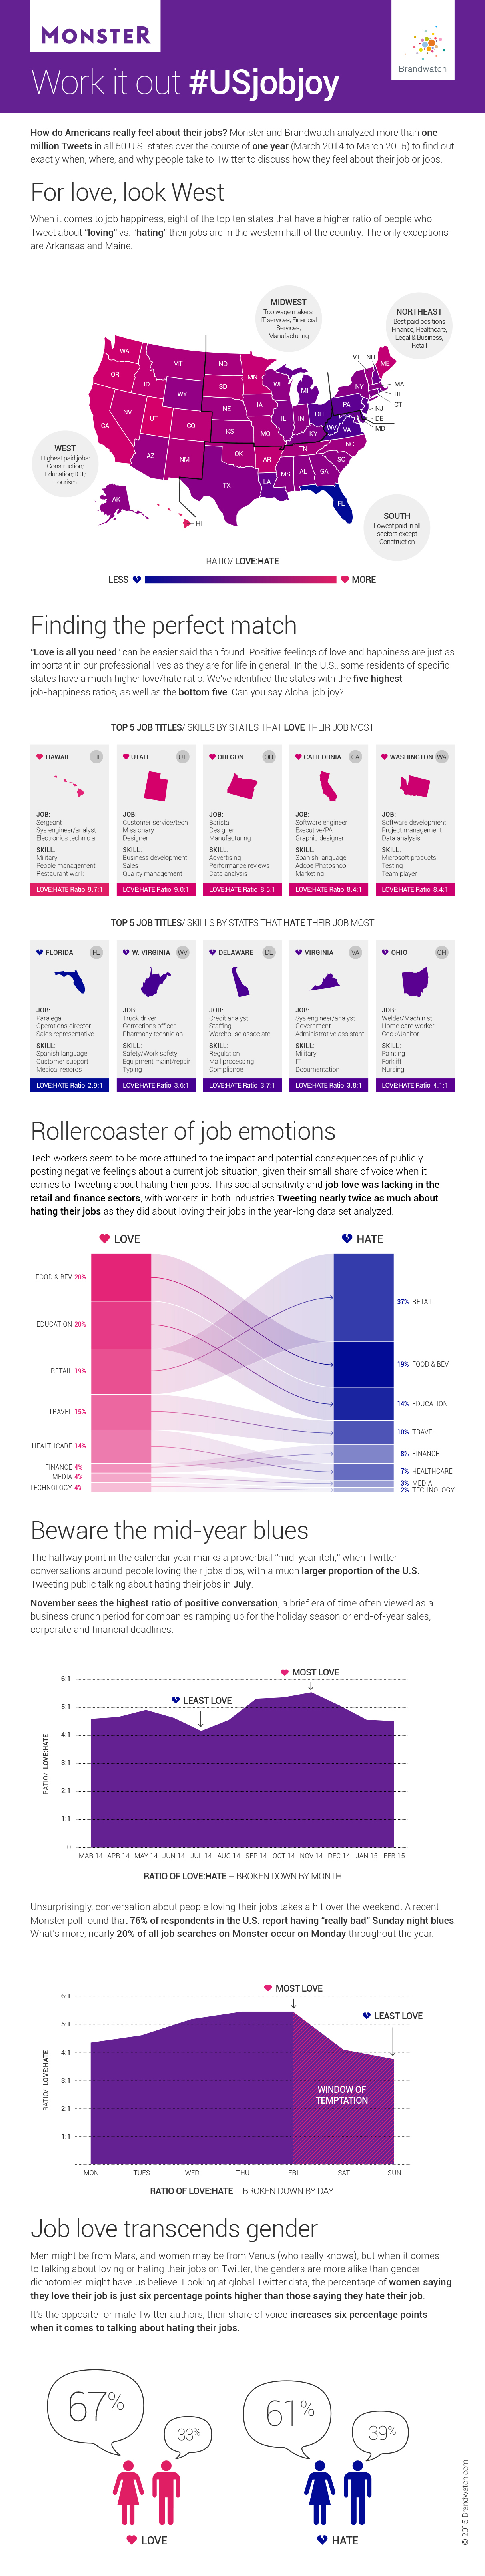 Monster and Brandwatch love/hate infographic